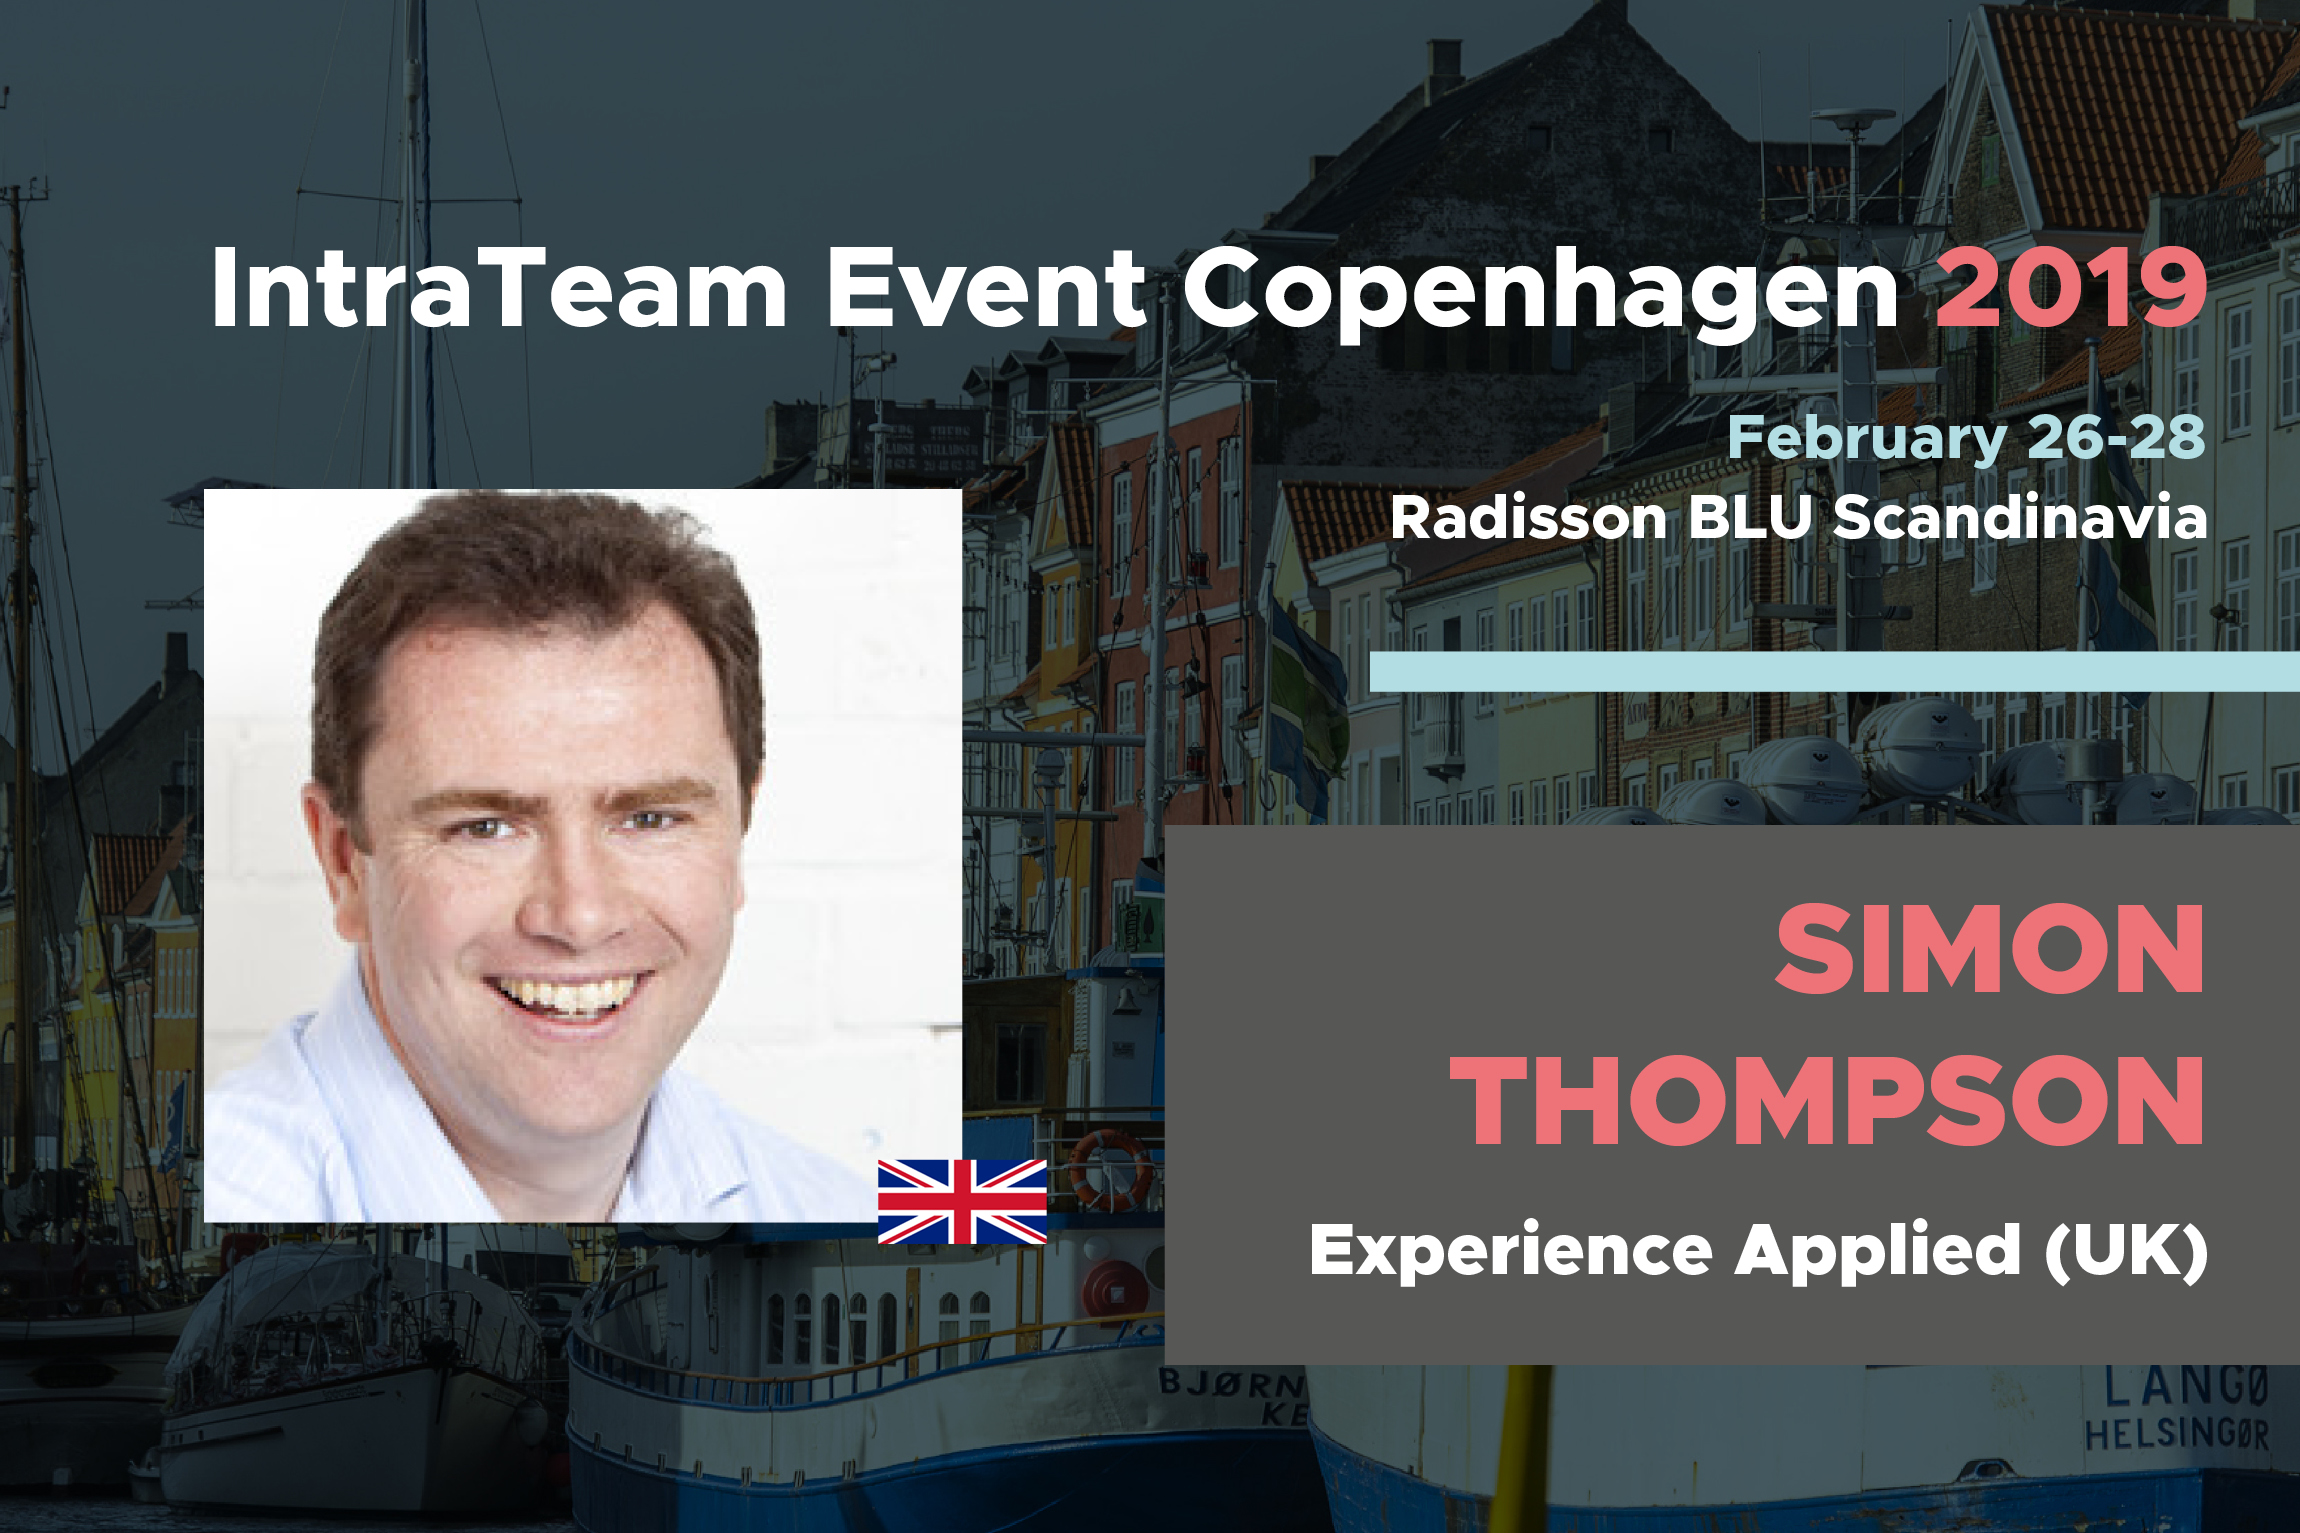 Banner for IntraTeam Event Copenhagen 2019 with photo and title of Simon Thompson